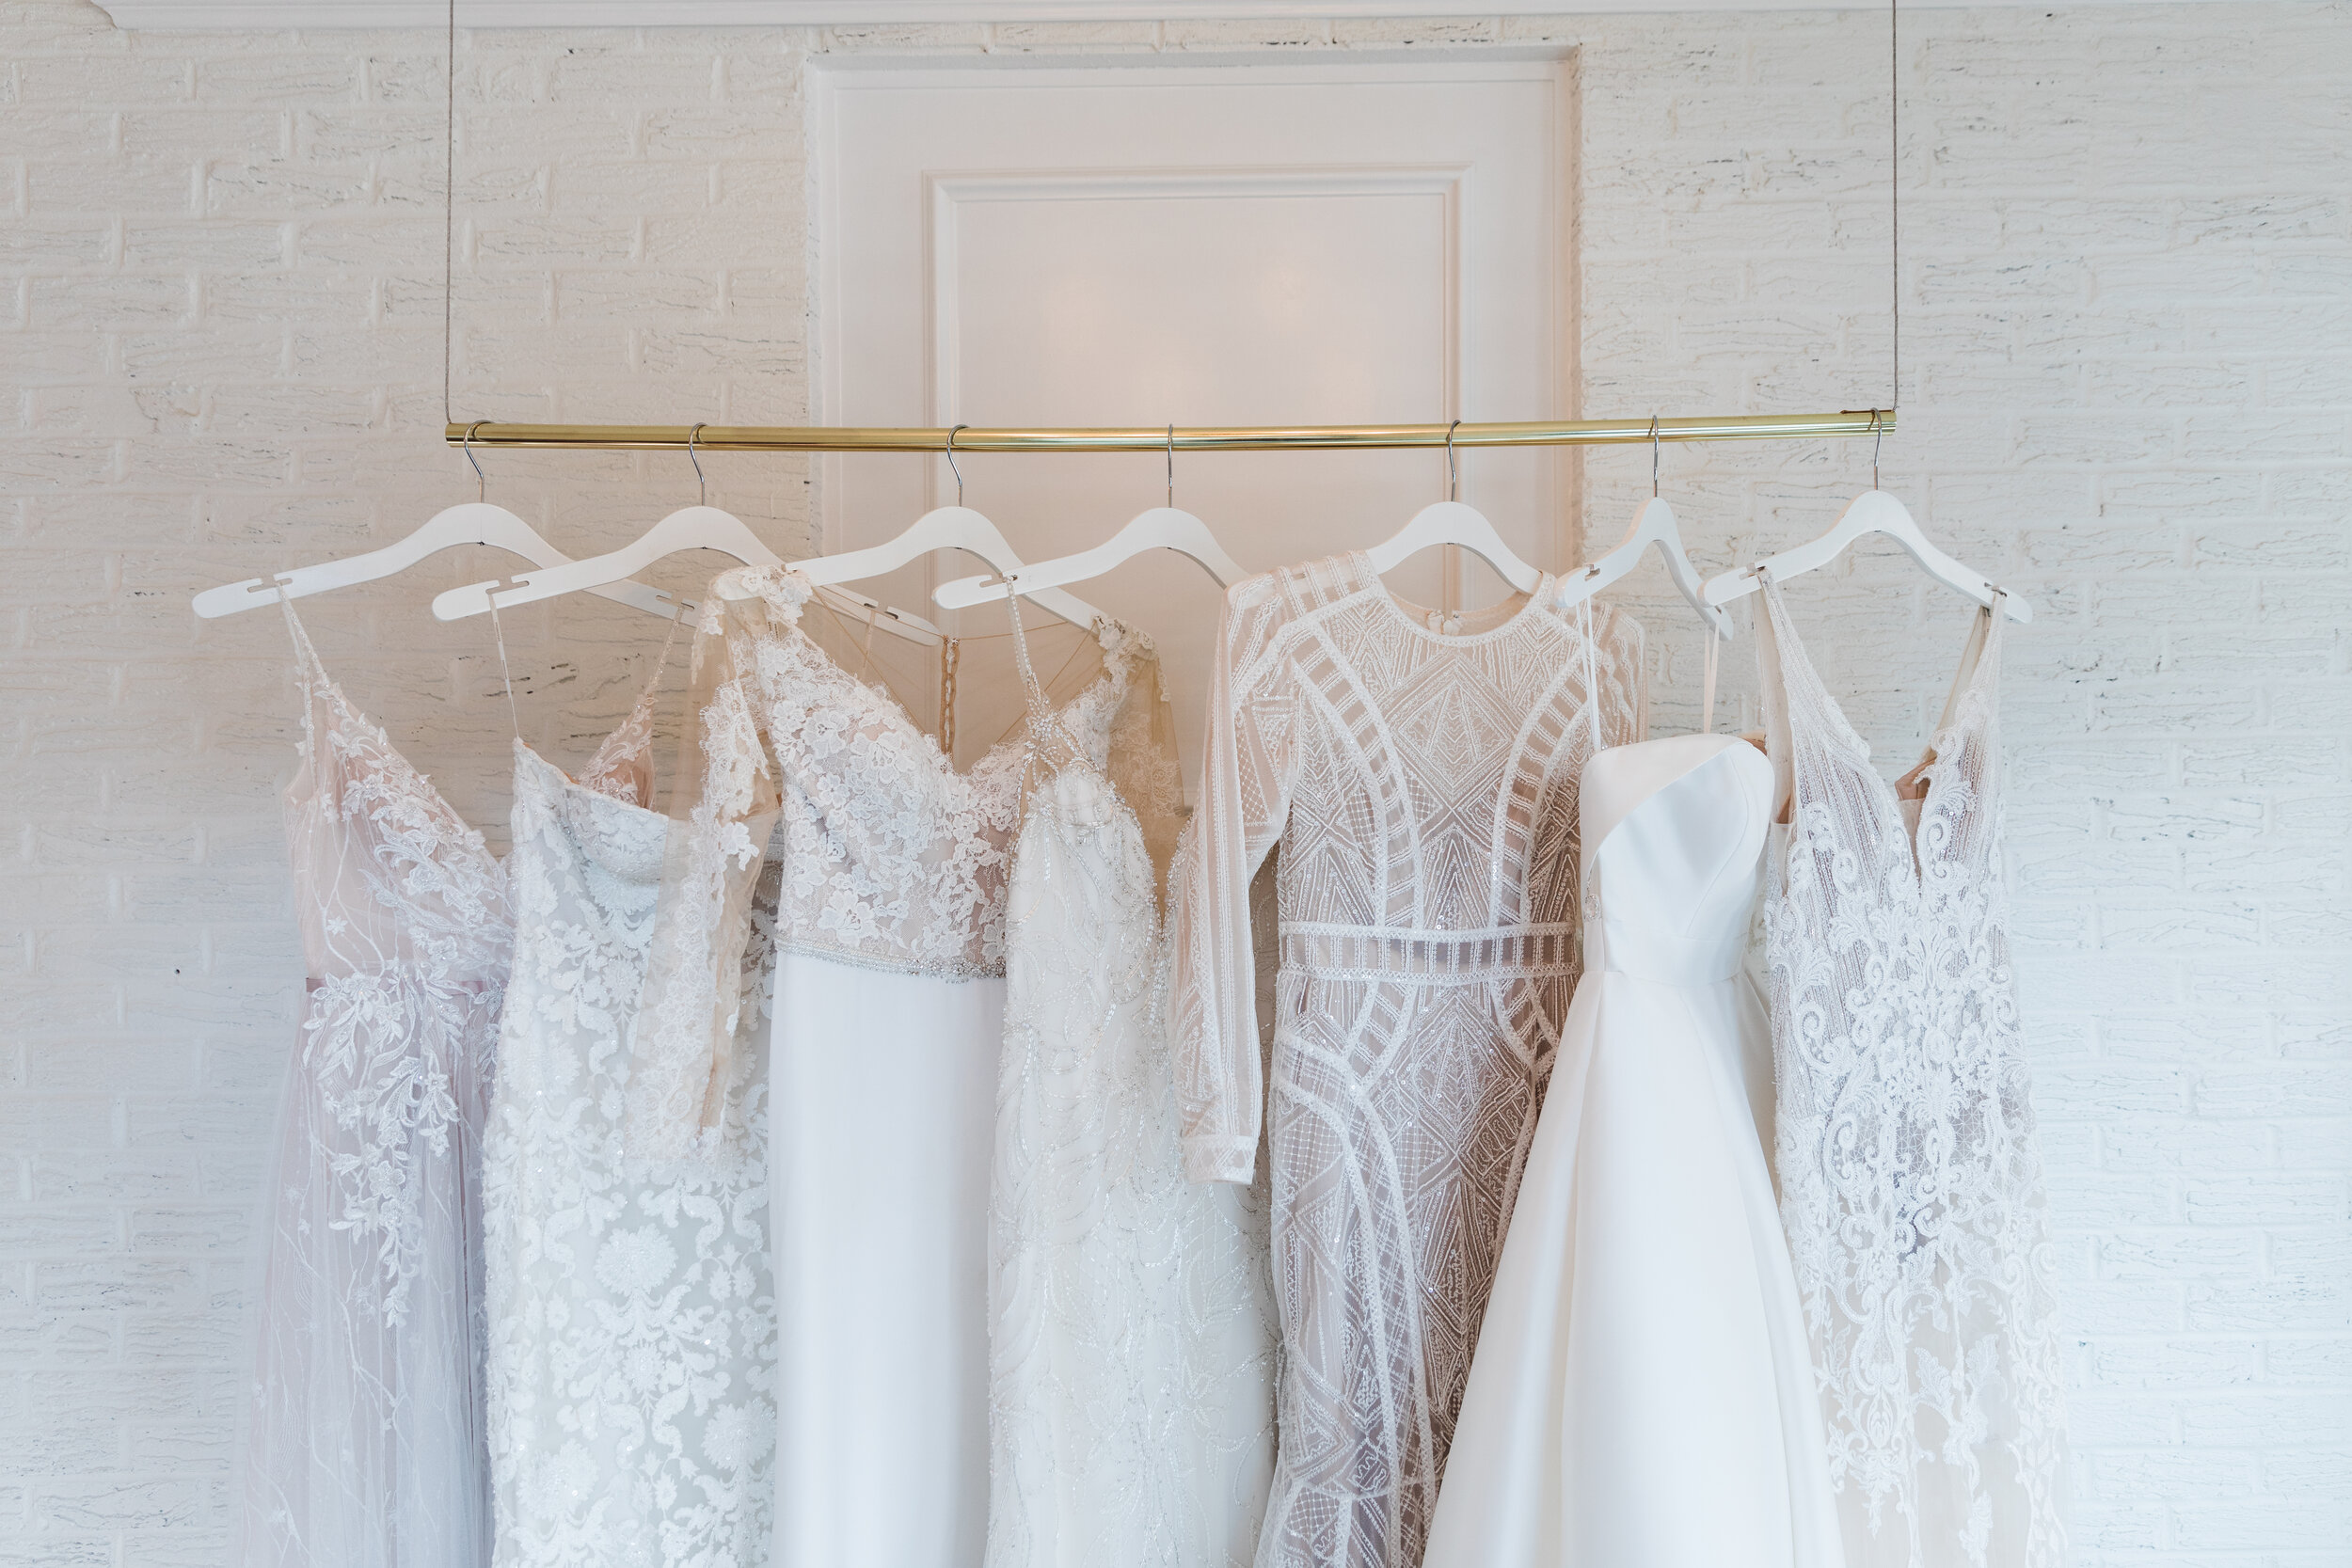 LOVE - Wedding gown shopping is a special occasion. Gather some of you nearest and dearest to celebrate the day with you! Then customize your experience by selecting a personalized playlist and tasty treats. Knowing that all the details are taken care of, the bride can truly be in the moment!